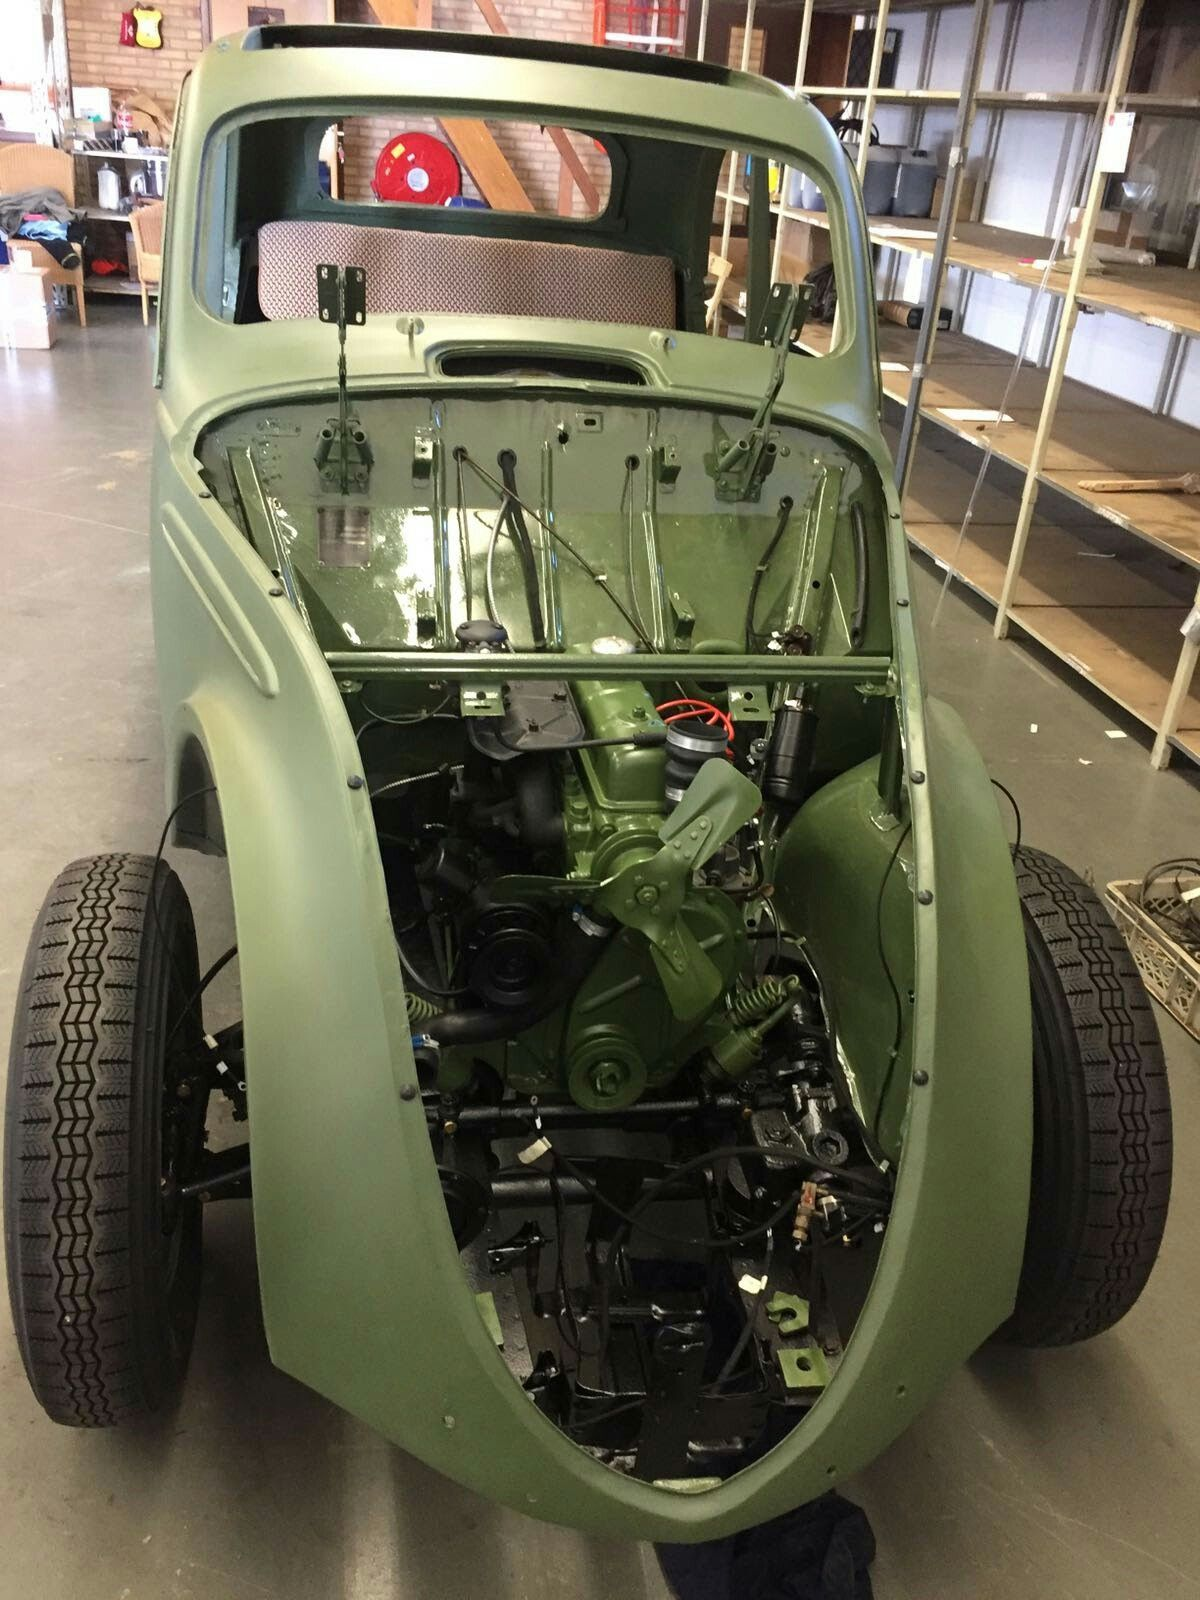 Peugeot 202 Restore, Old france car involving france army to defend ...